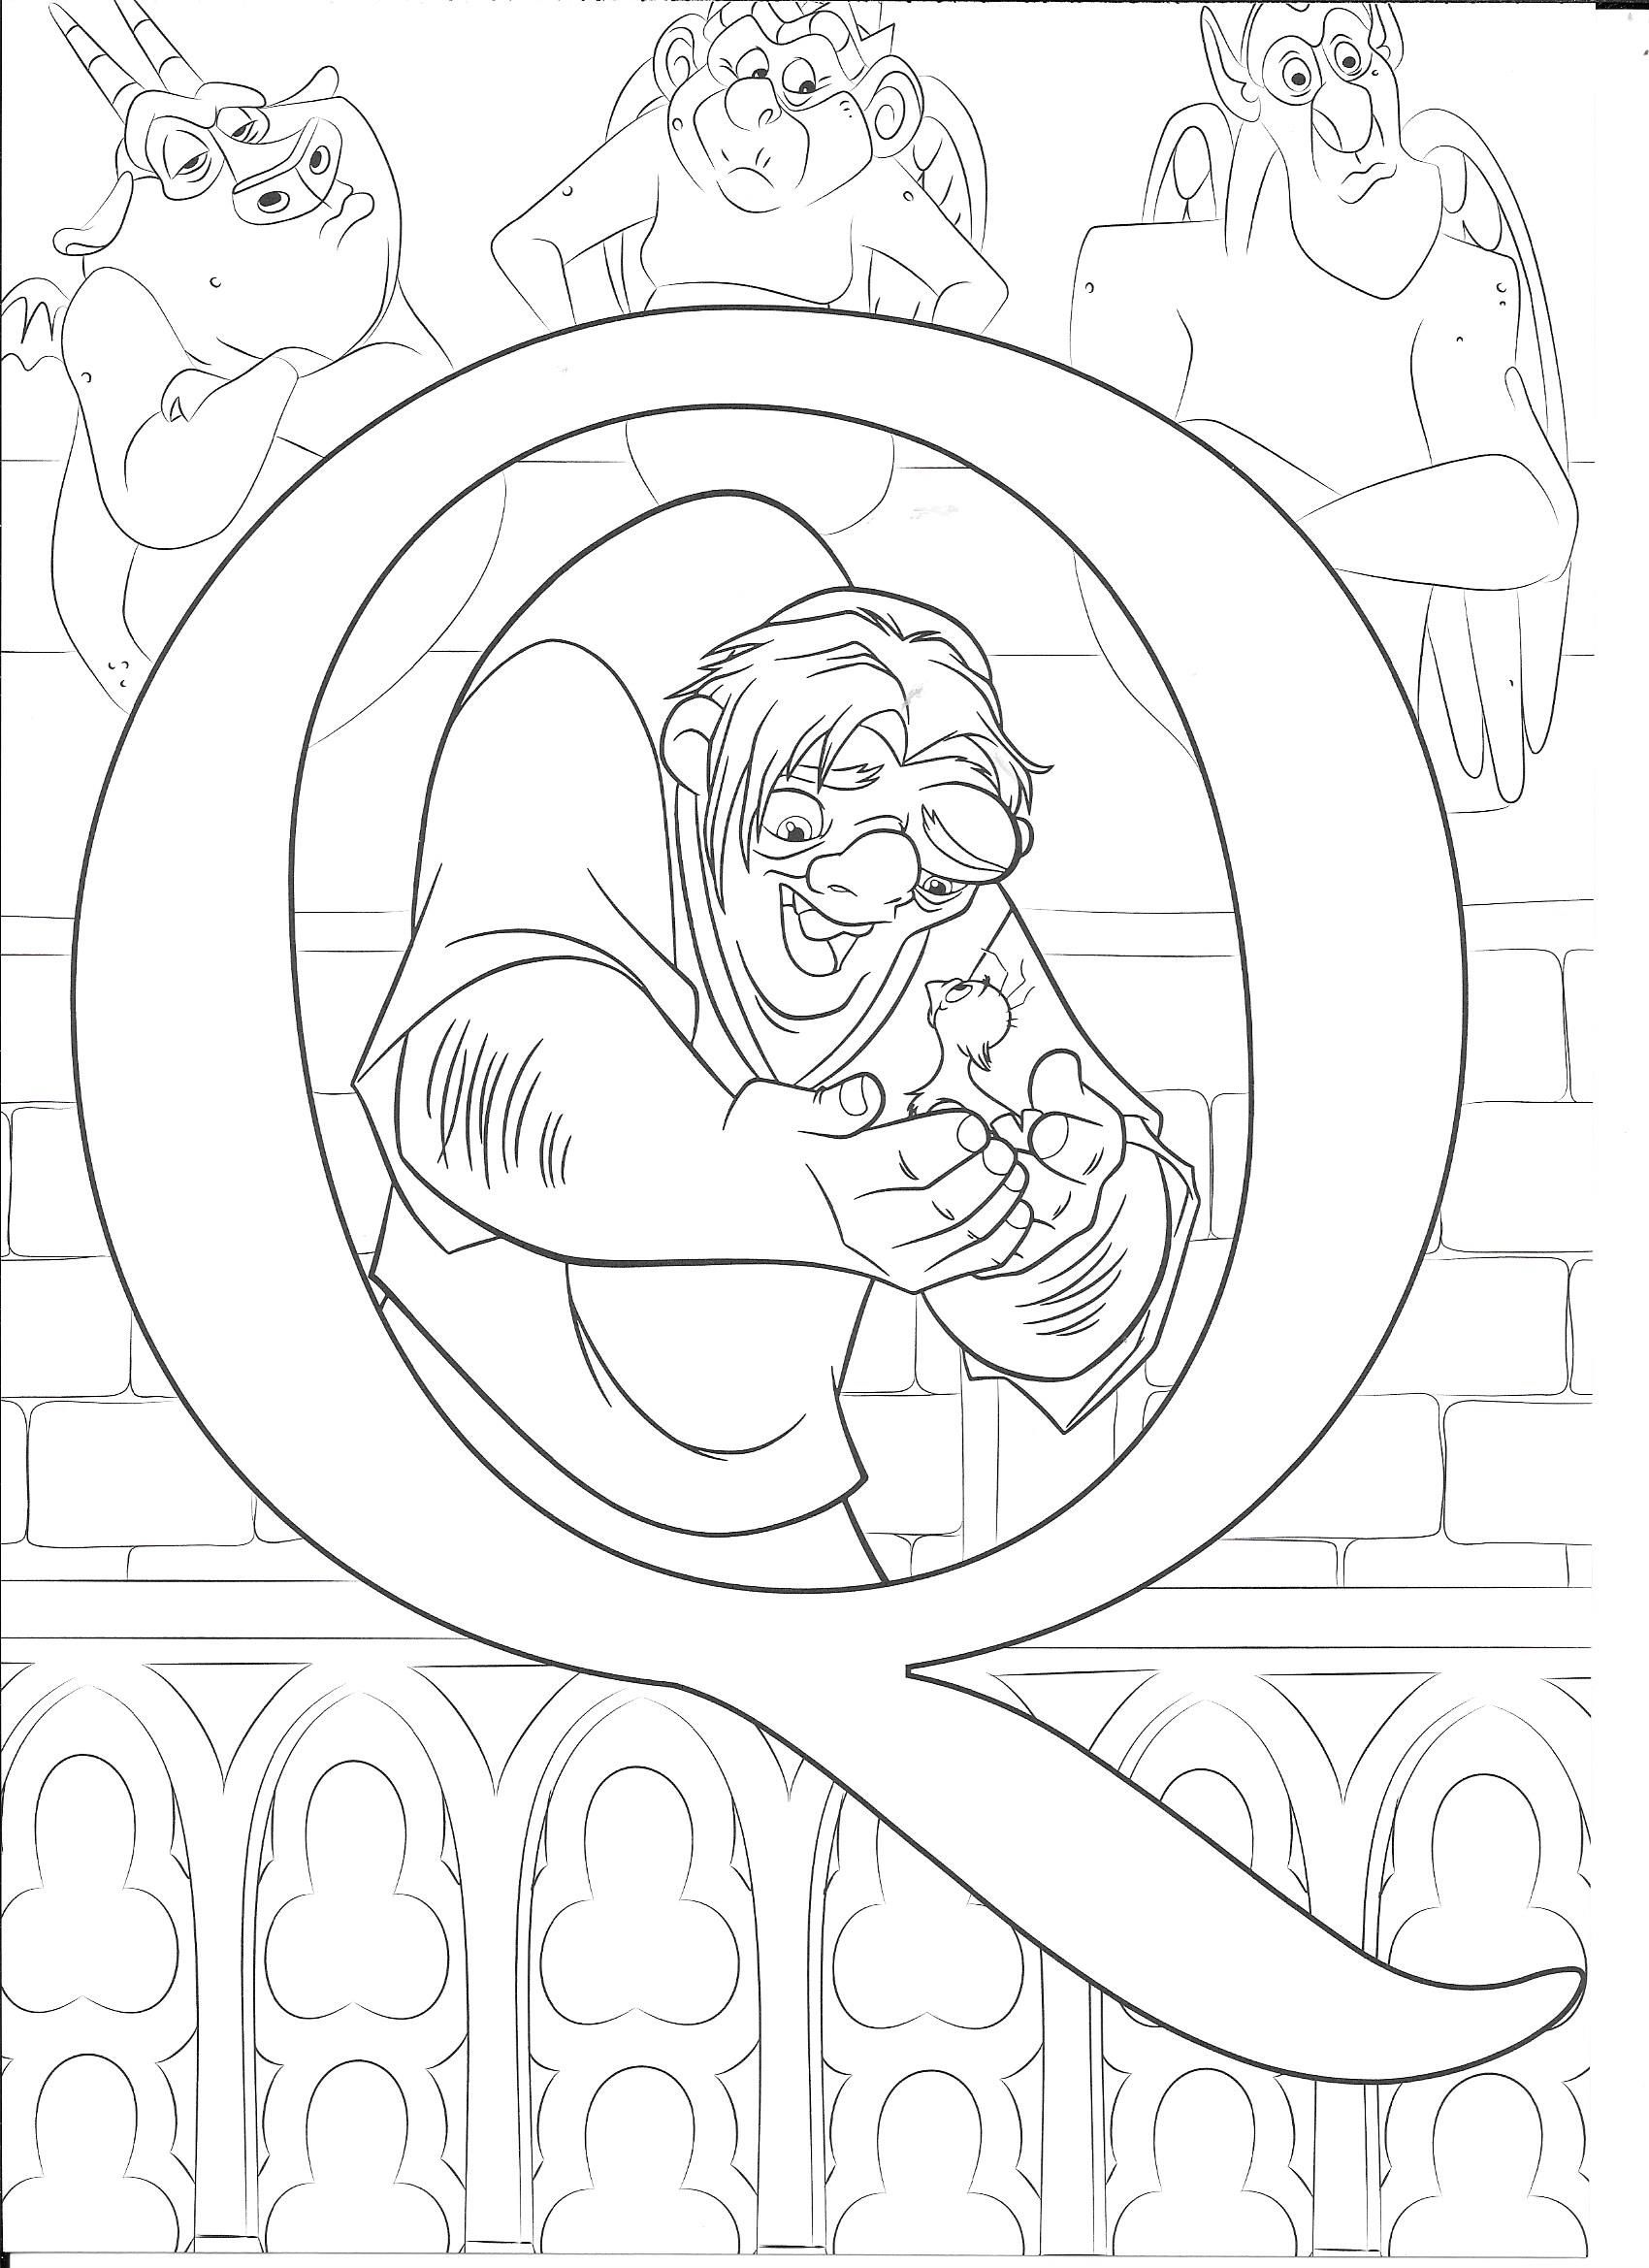 Pin by naomi pultyn on coloring pages pinterest disney alphabet